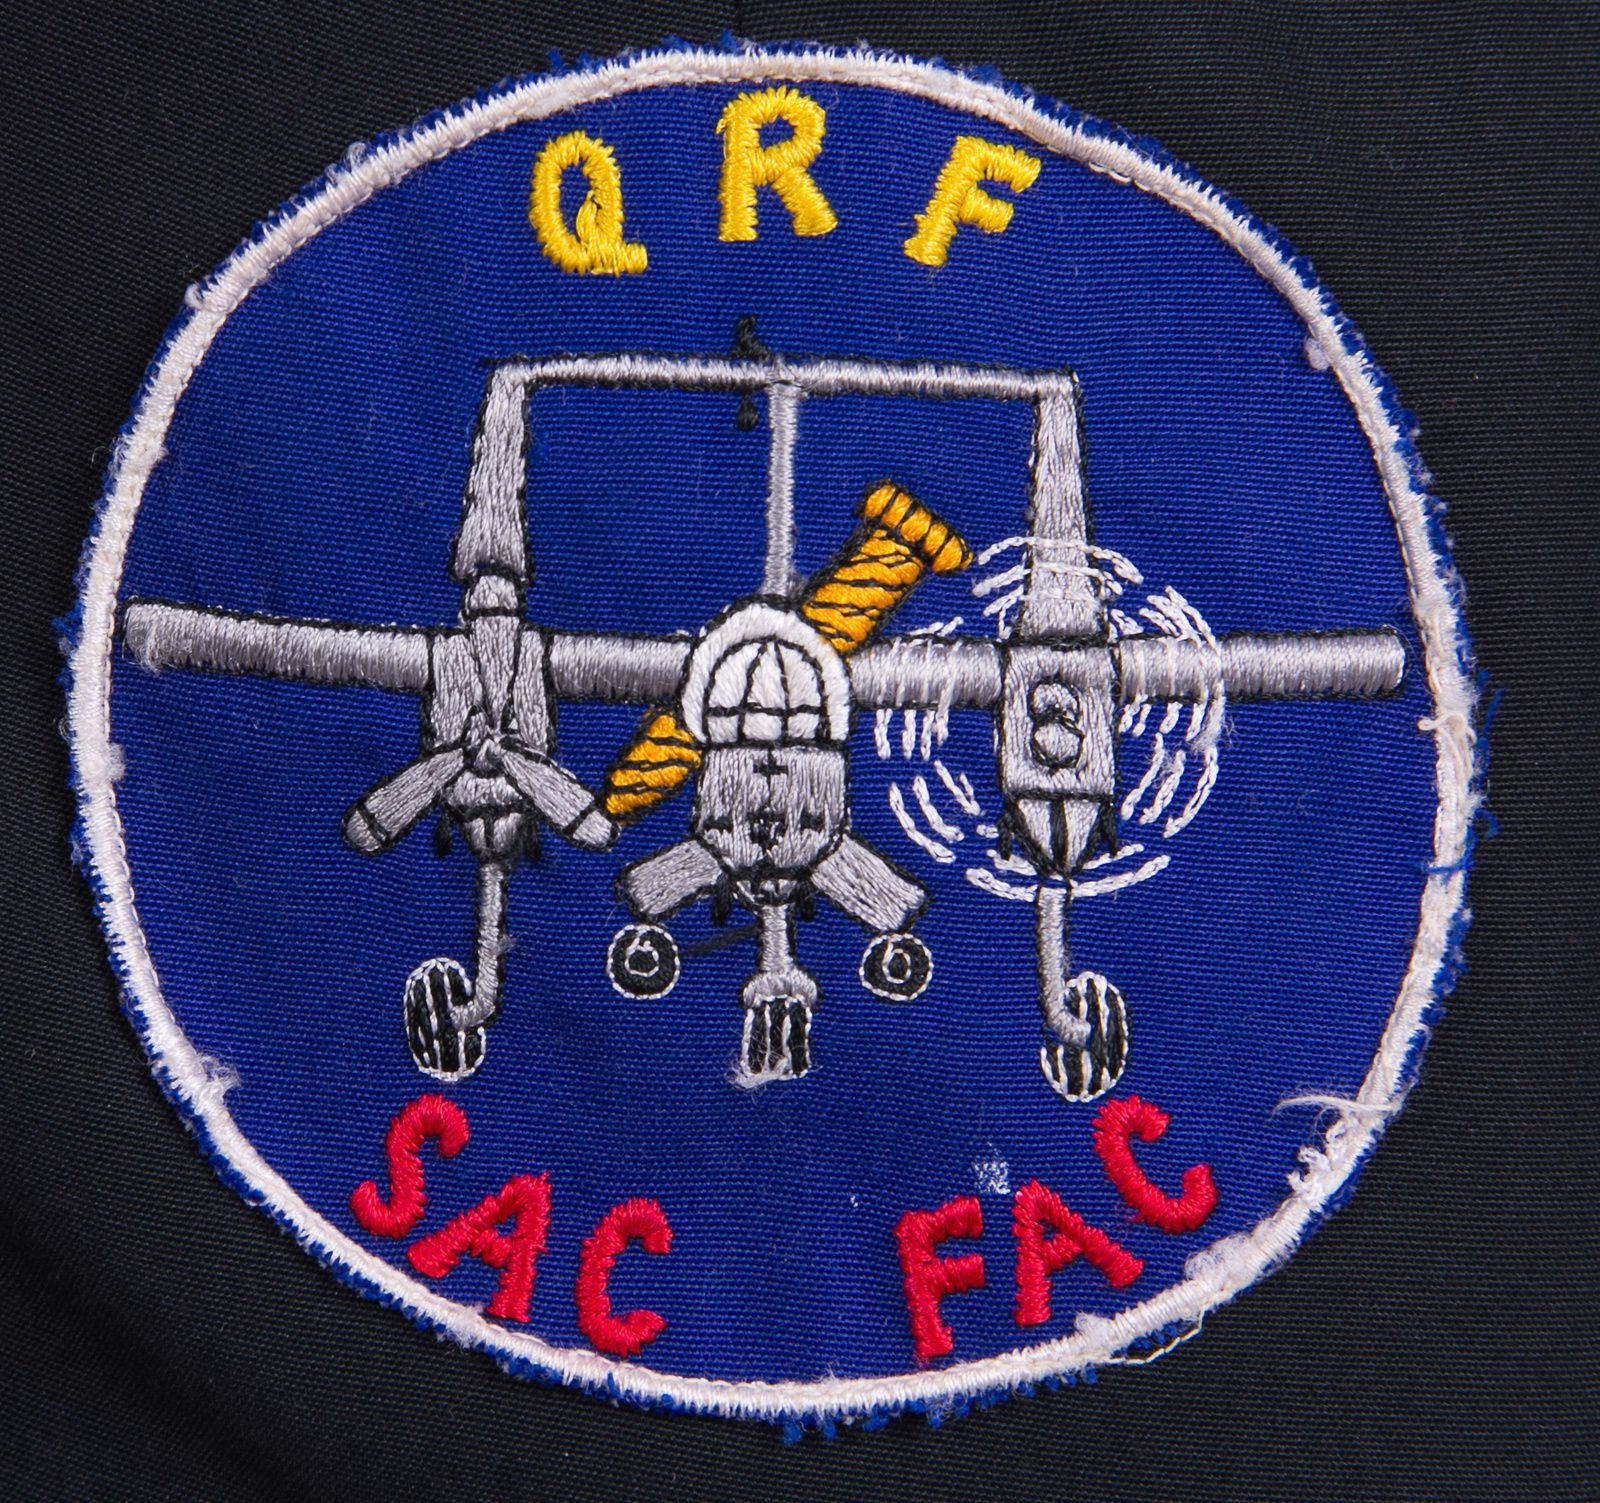 """The 23rd TASS QRF patch is a mystery. QRF could stand for """"Quick Return Flight,"""" hence the motionless propeller as after a technical problem. Yet it might also be """"Quick Reaction Flight,"""" with one engine running on alert, waiting to get the word to crank up. As for the SAC FAC, it could refer to B52 BDA missions performed by the FACs or to a former tanker/bomber pilot converted to the FAC role, which was not uncommon by then. Unfortunately, the pilot's listing of service received was incomplete."""